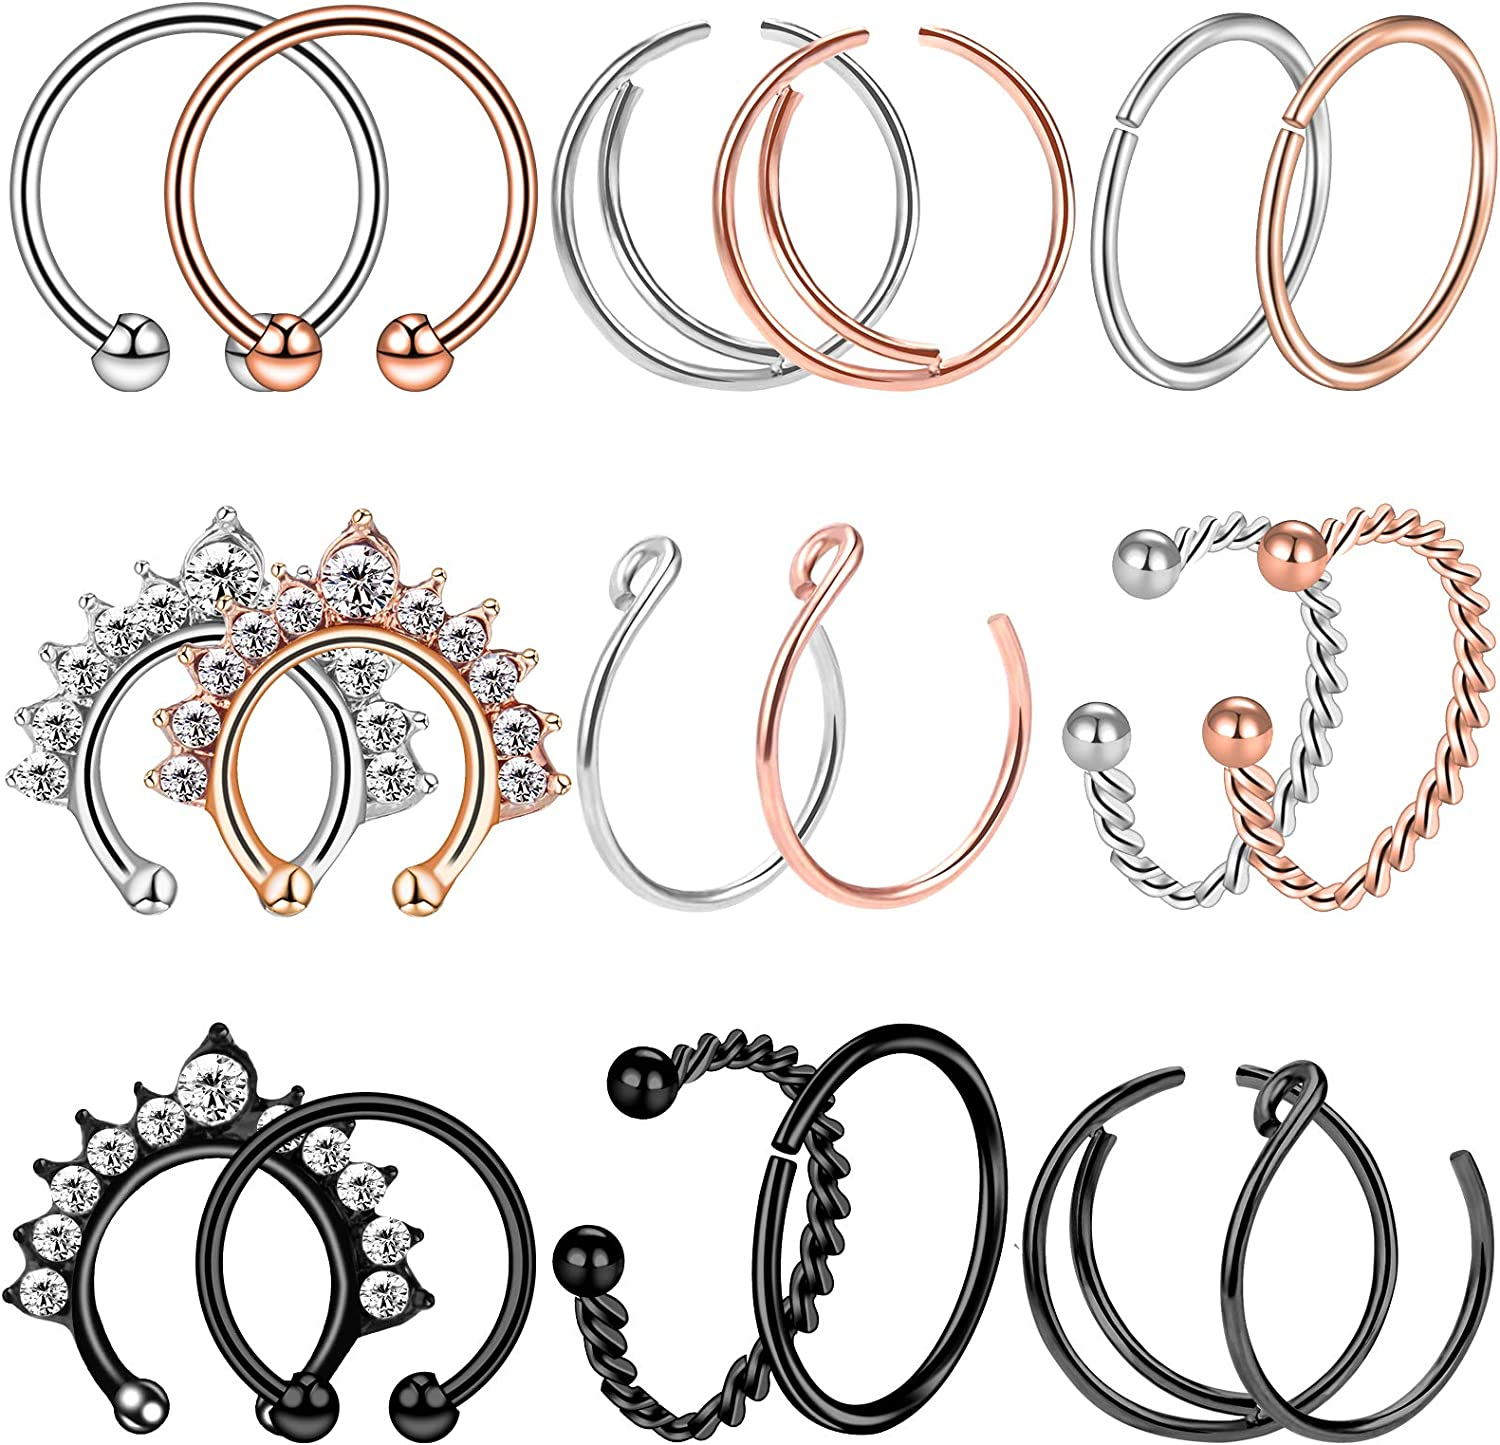 BodyBonita Fake Nose Rings Septum Leaf Opal Faux Nose Ring Hoop Clip on Nose Non-Piercing Jewelry Mixed Color Body Jewelry for Women Men